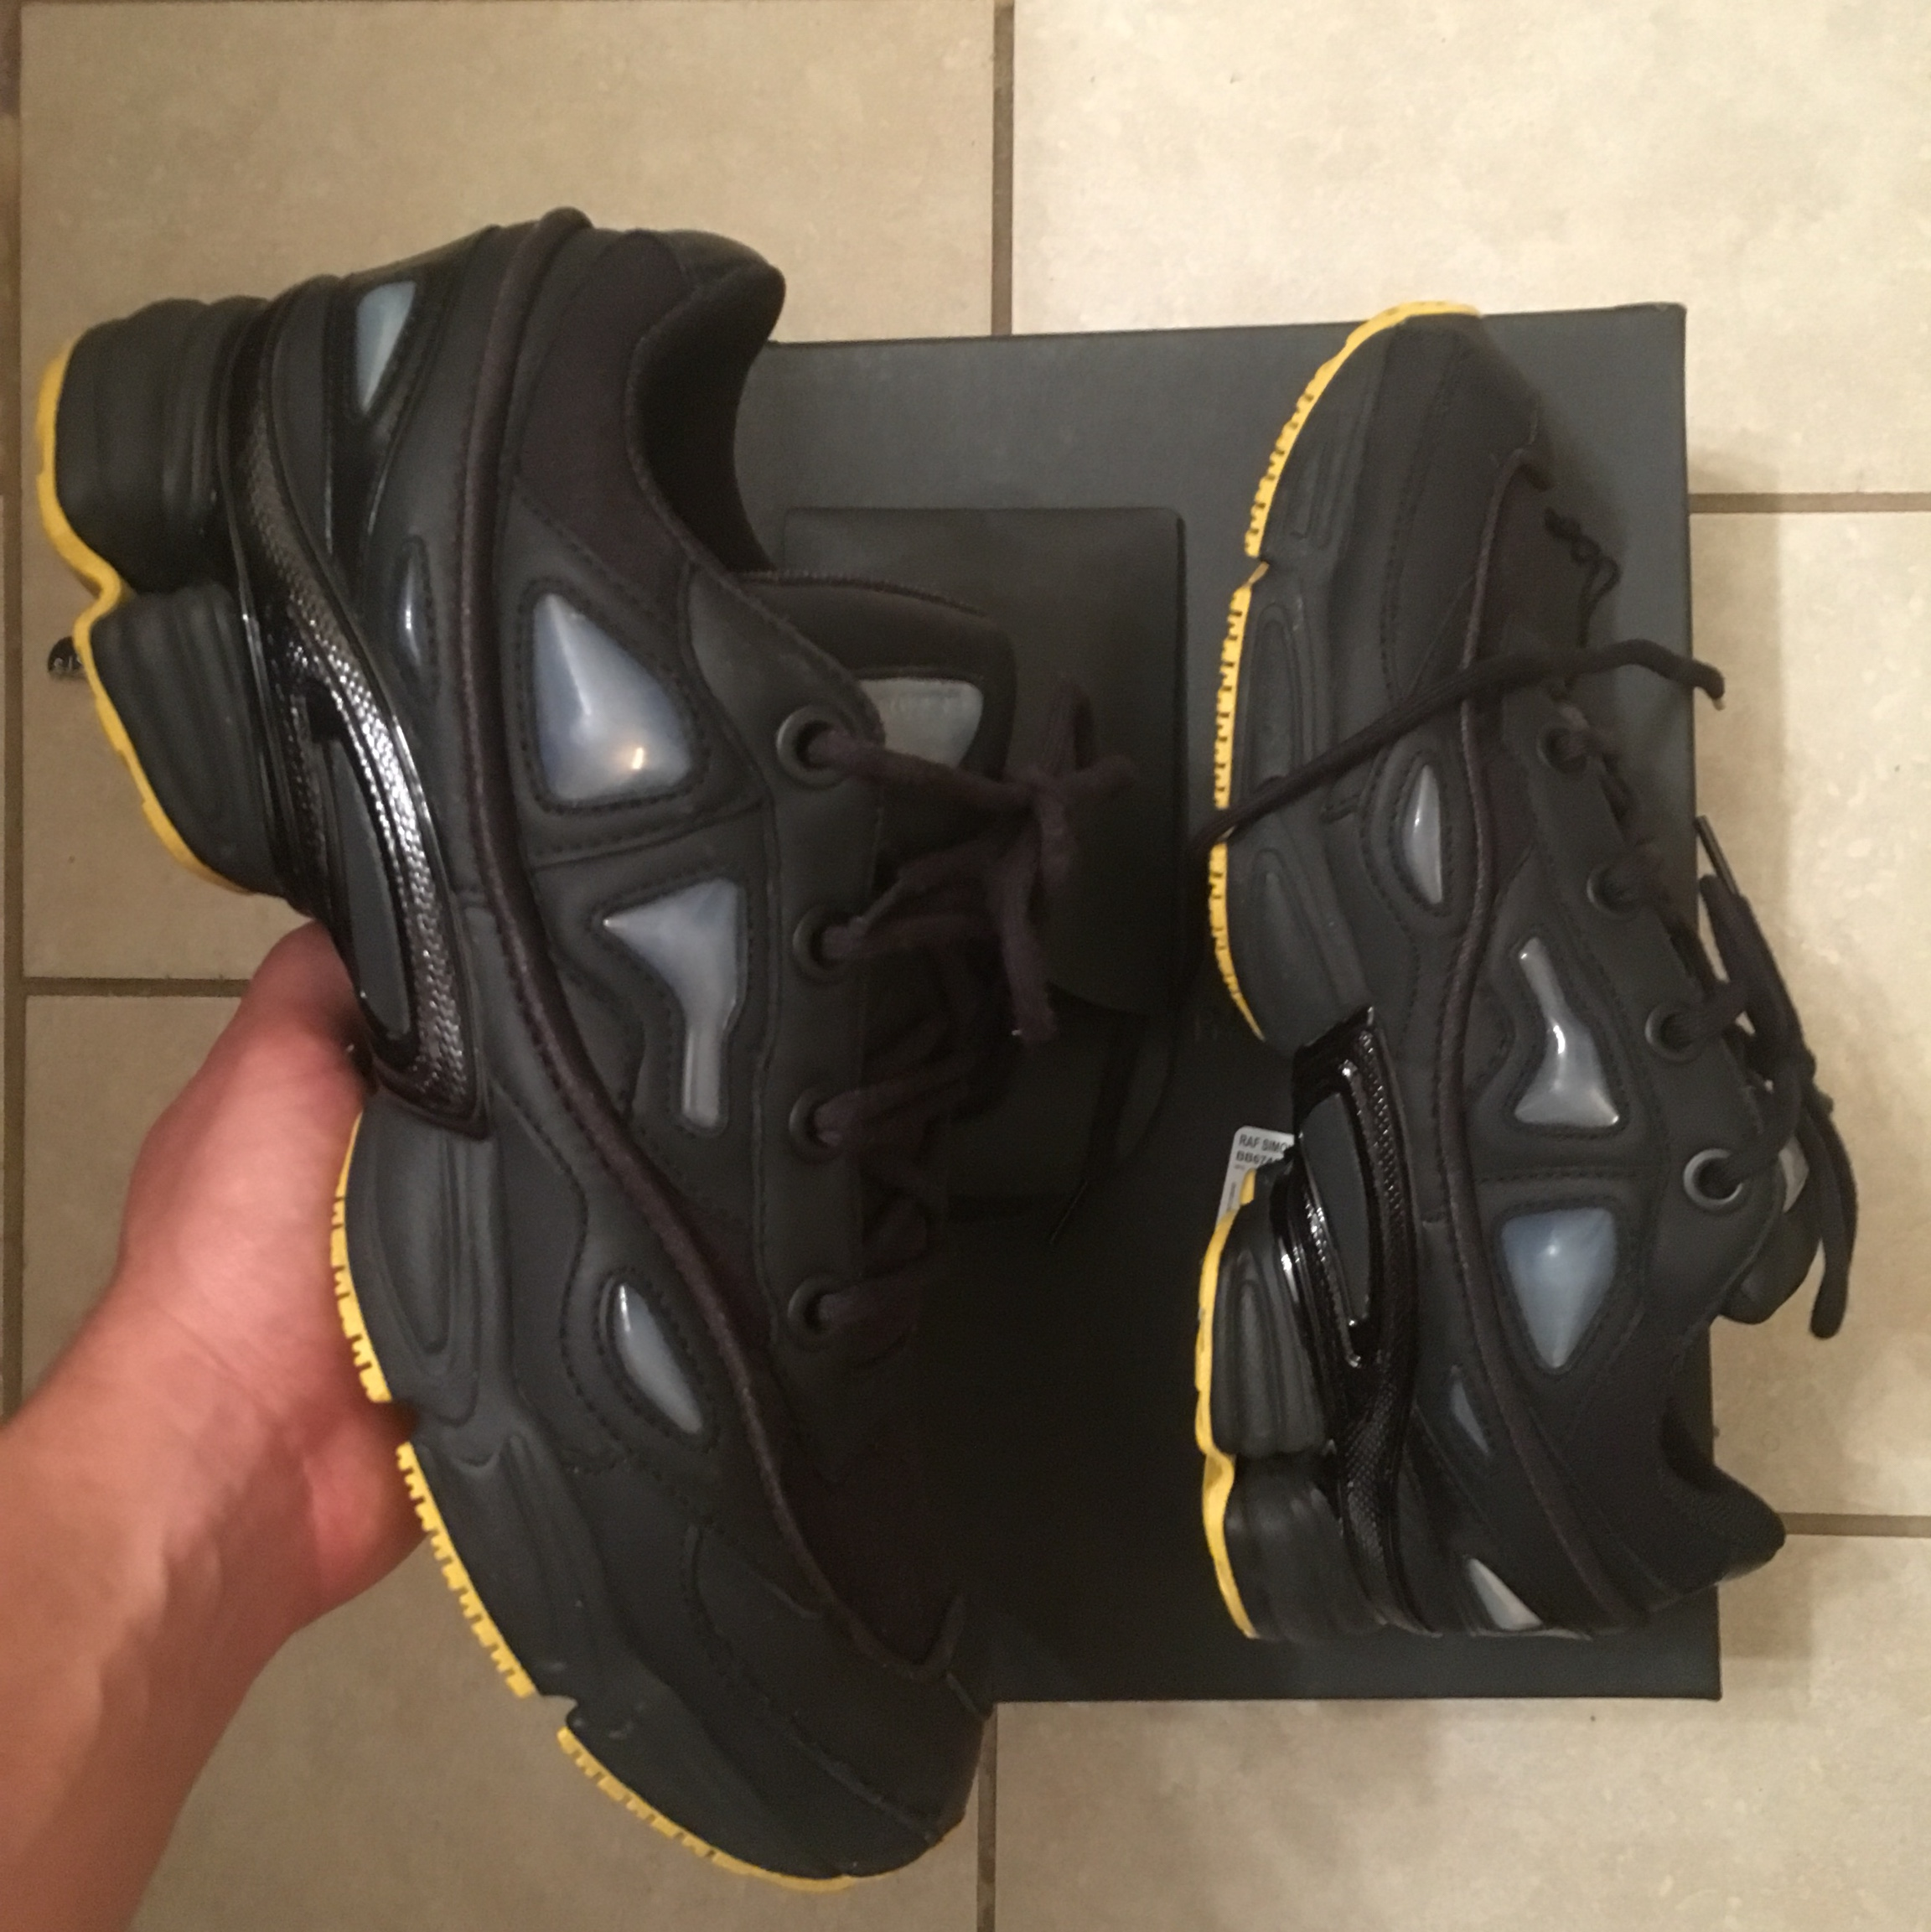 Didnt like how they fit Ozweego 3 Size 10 Worn... - Depop